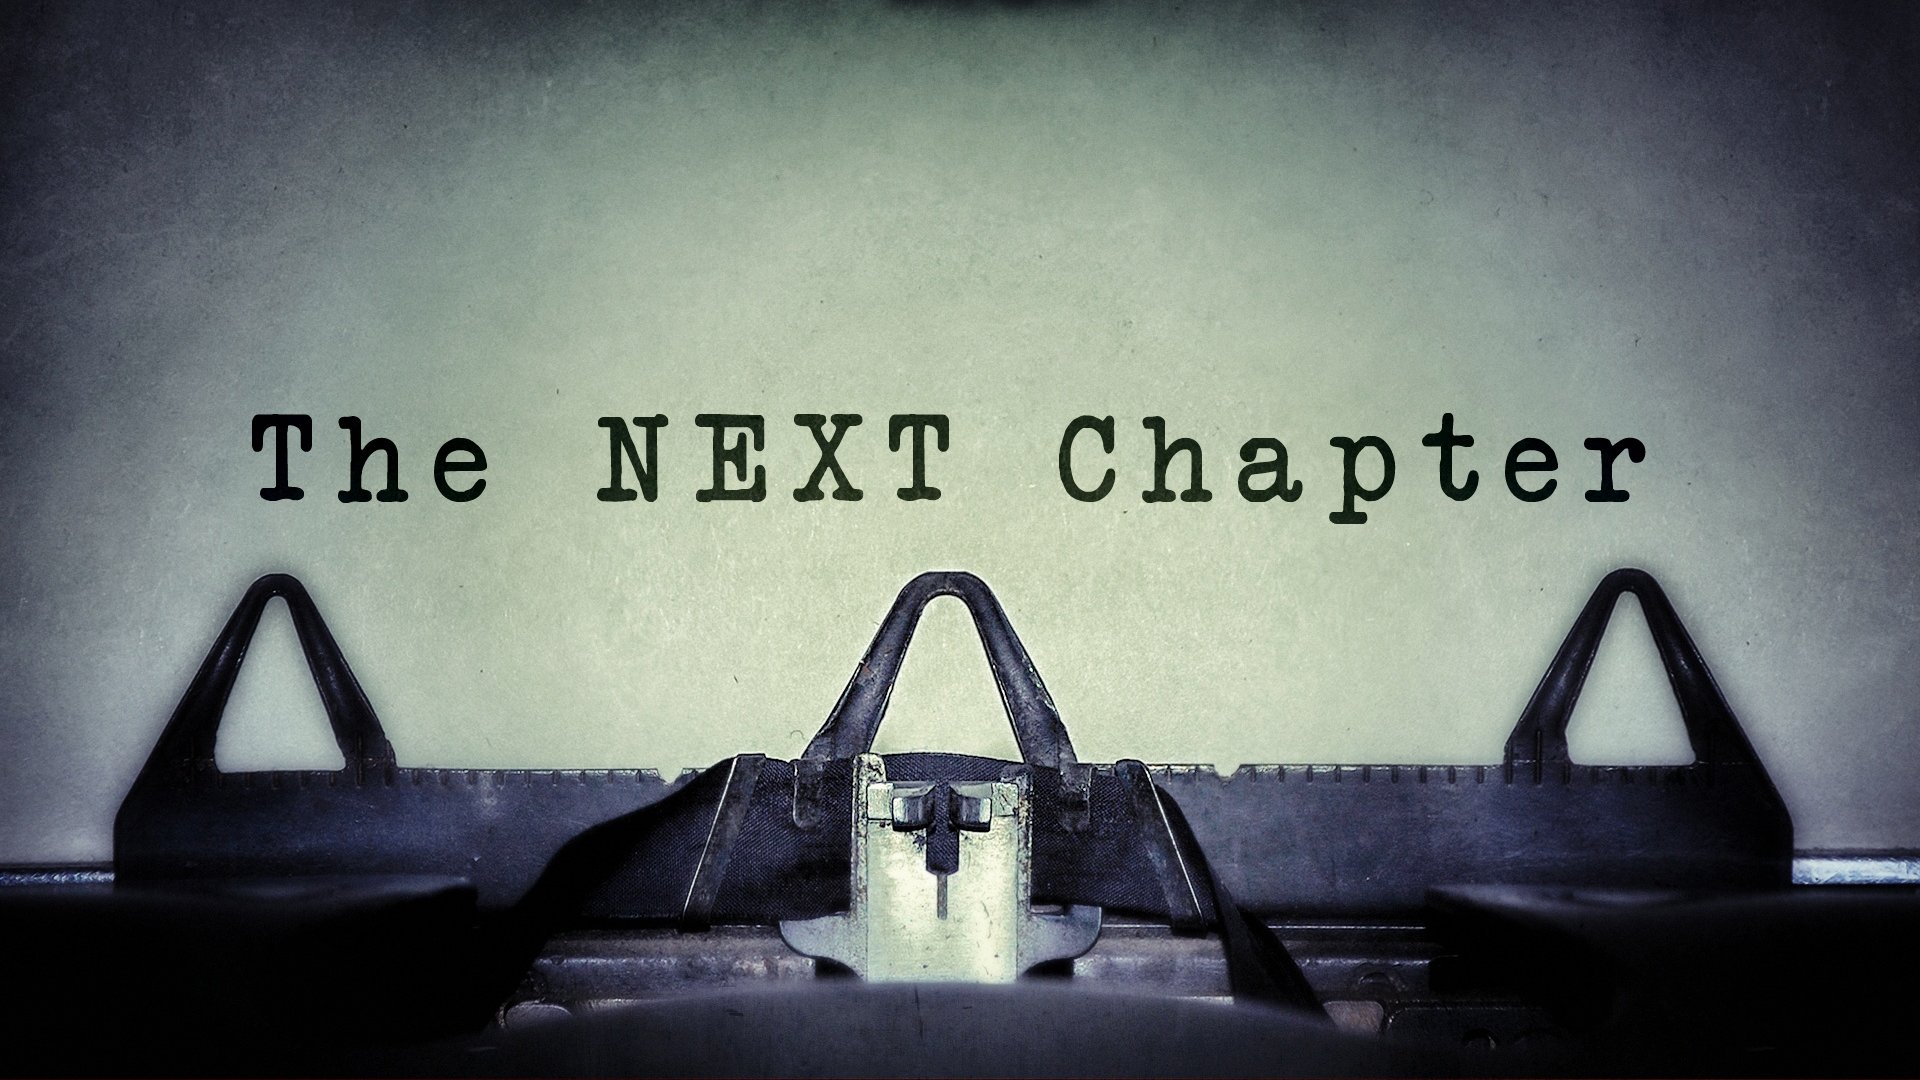 The Next Chapter – Divorce to Healing